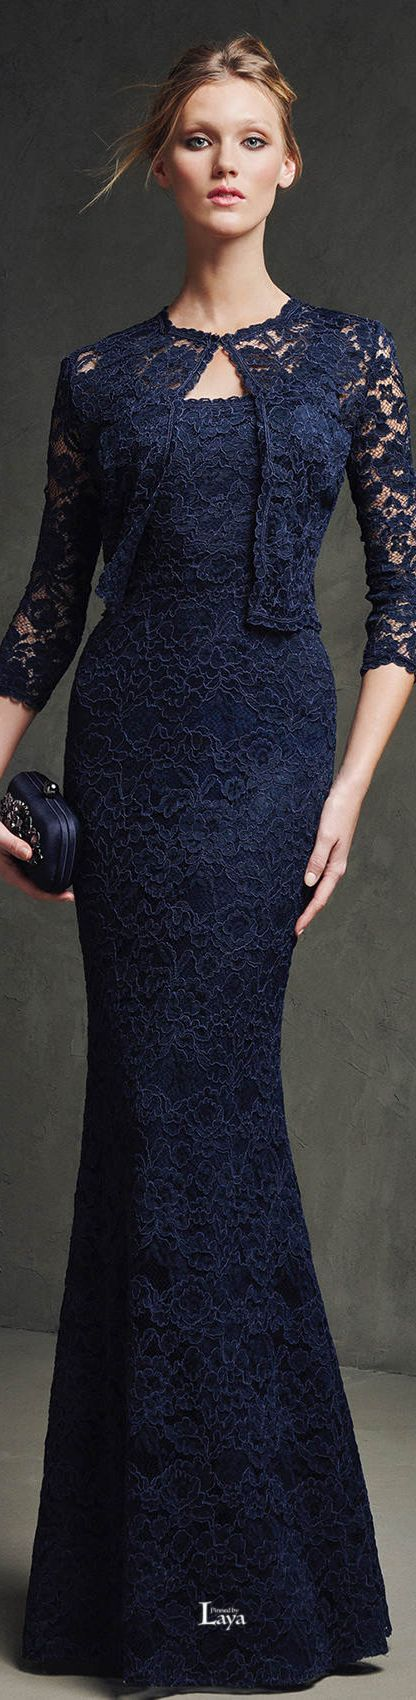 Pronovias ~ Spring Navy Embroidered Maxi Dress with Cropped Jacket 2015